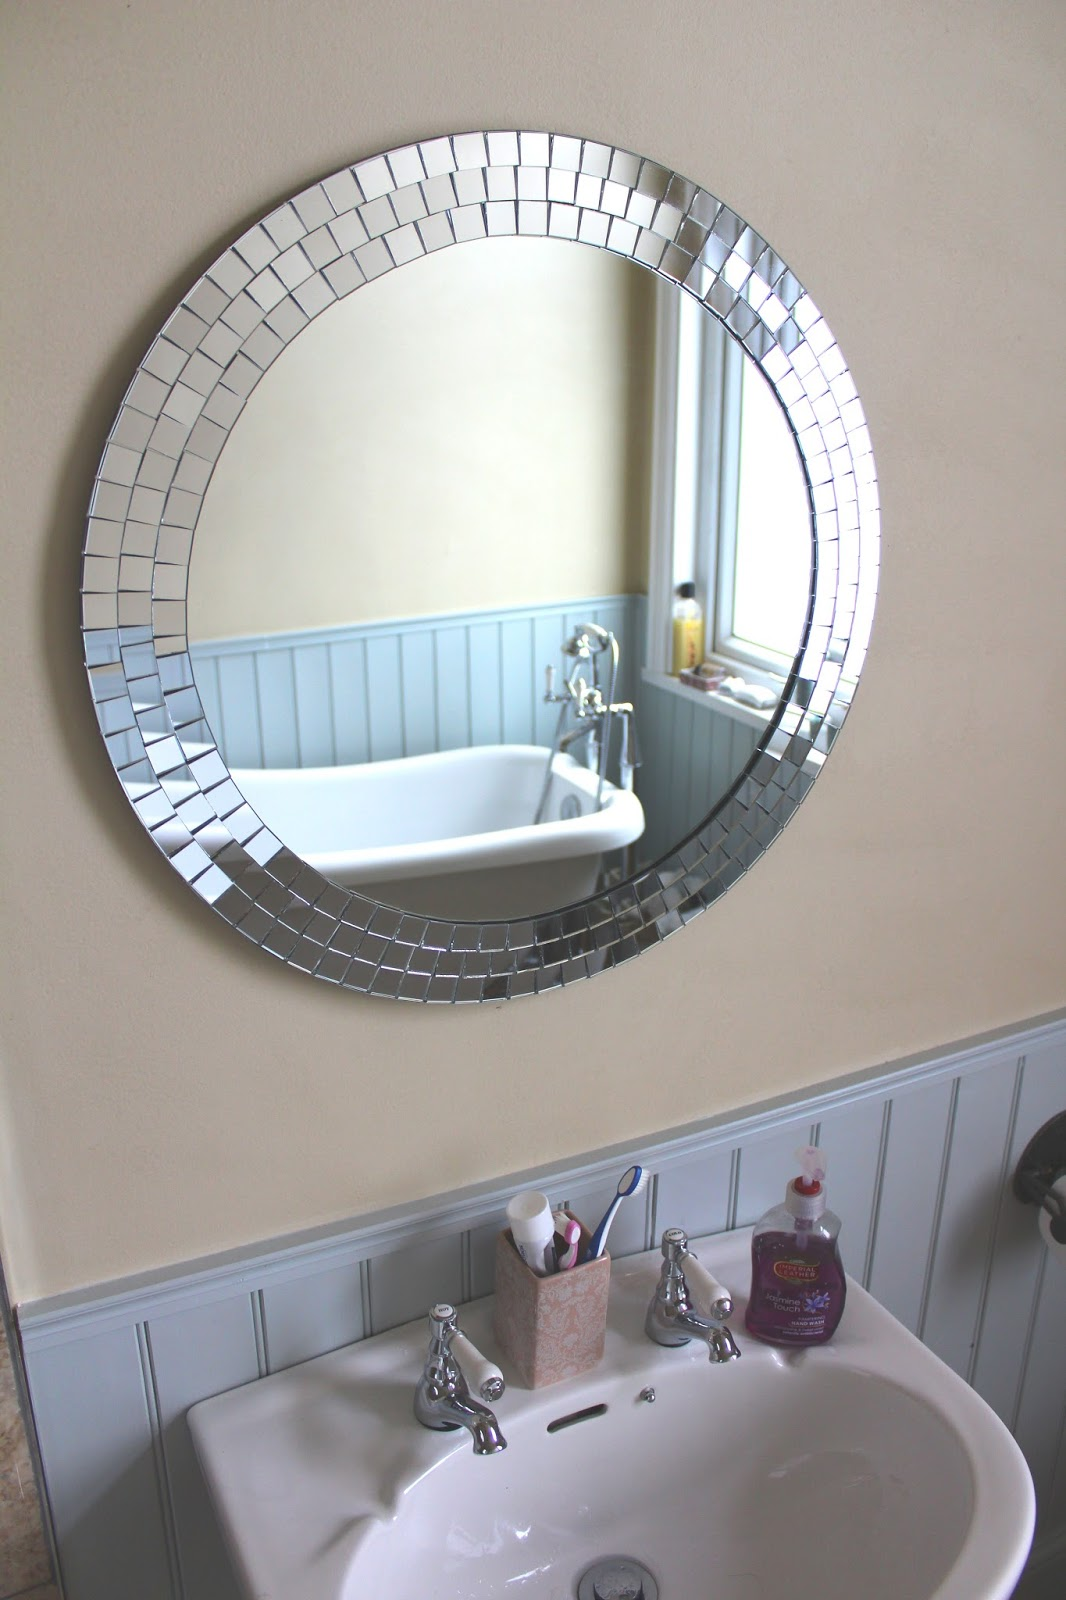 Uk home renovation interiors and diy blog for Mirror installation